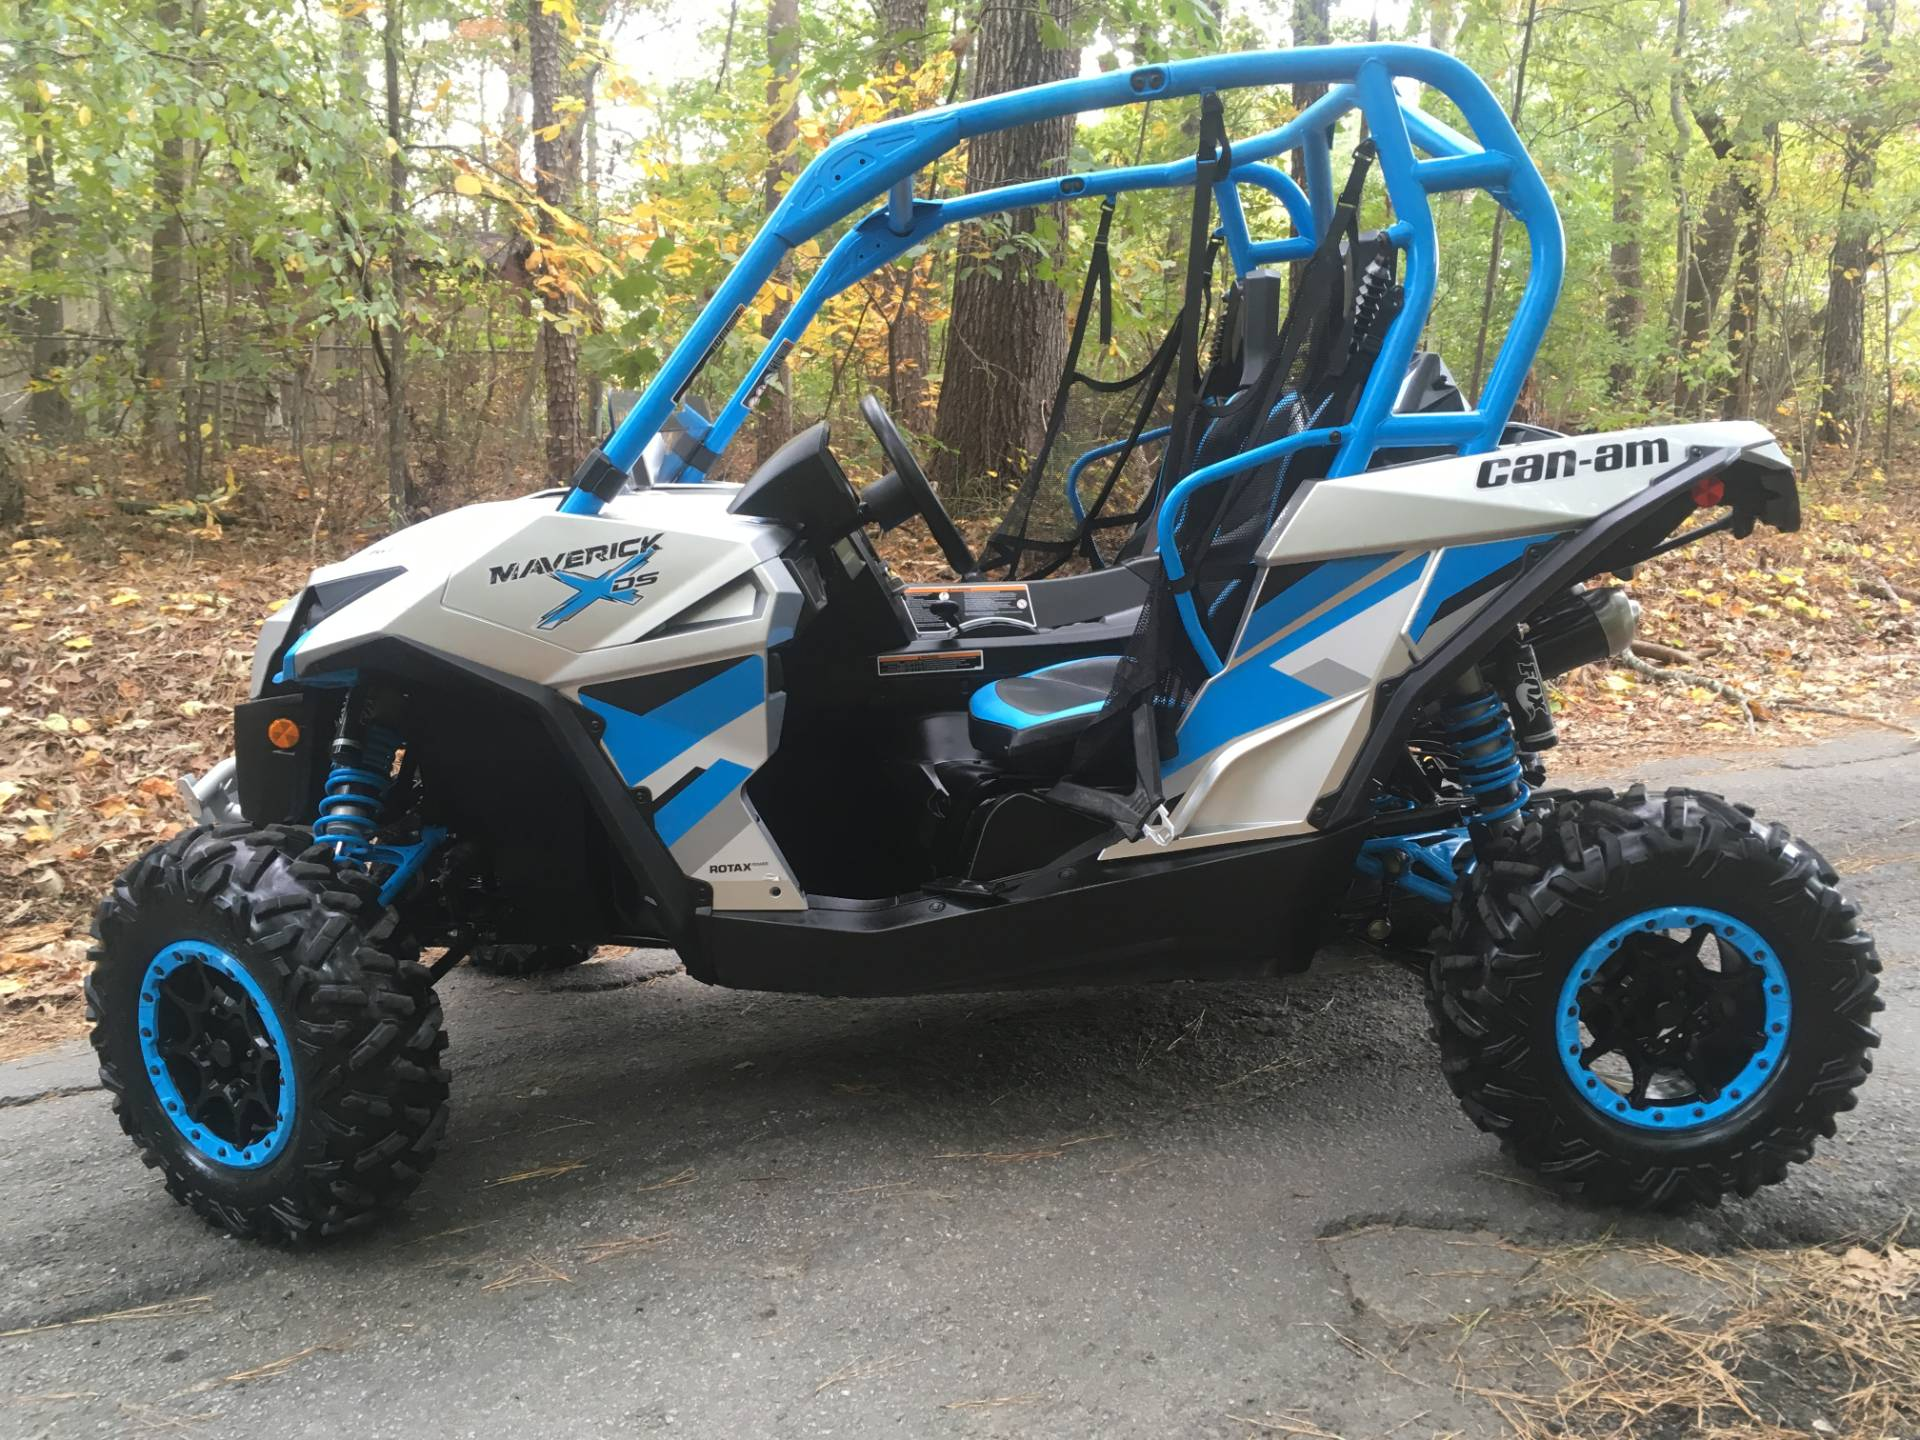 2016 CAN-AM MAVERICK 1000R TURBO X DS in Woodstock, Georgia - Photo 2